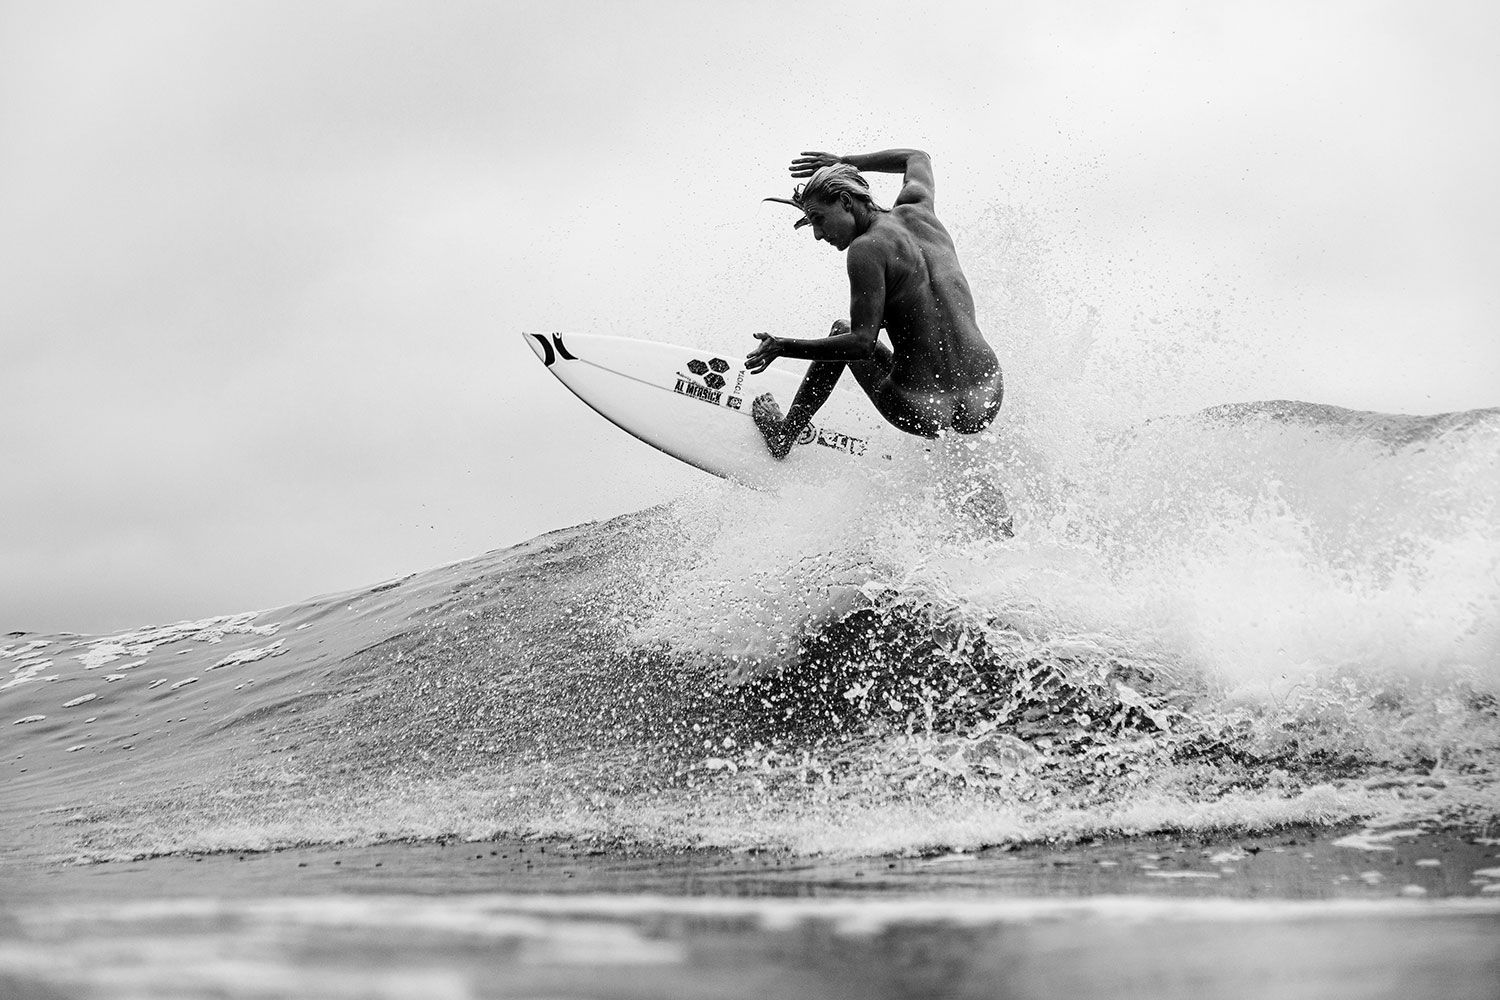 Surfer Lakey Peterson has always felt a connection with the ocean